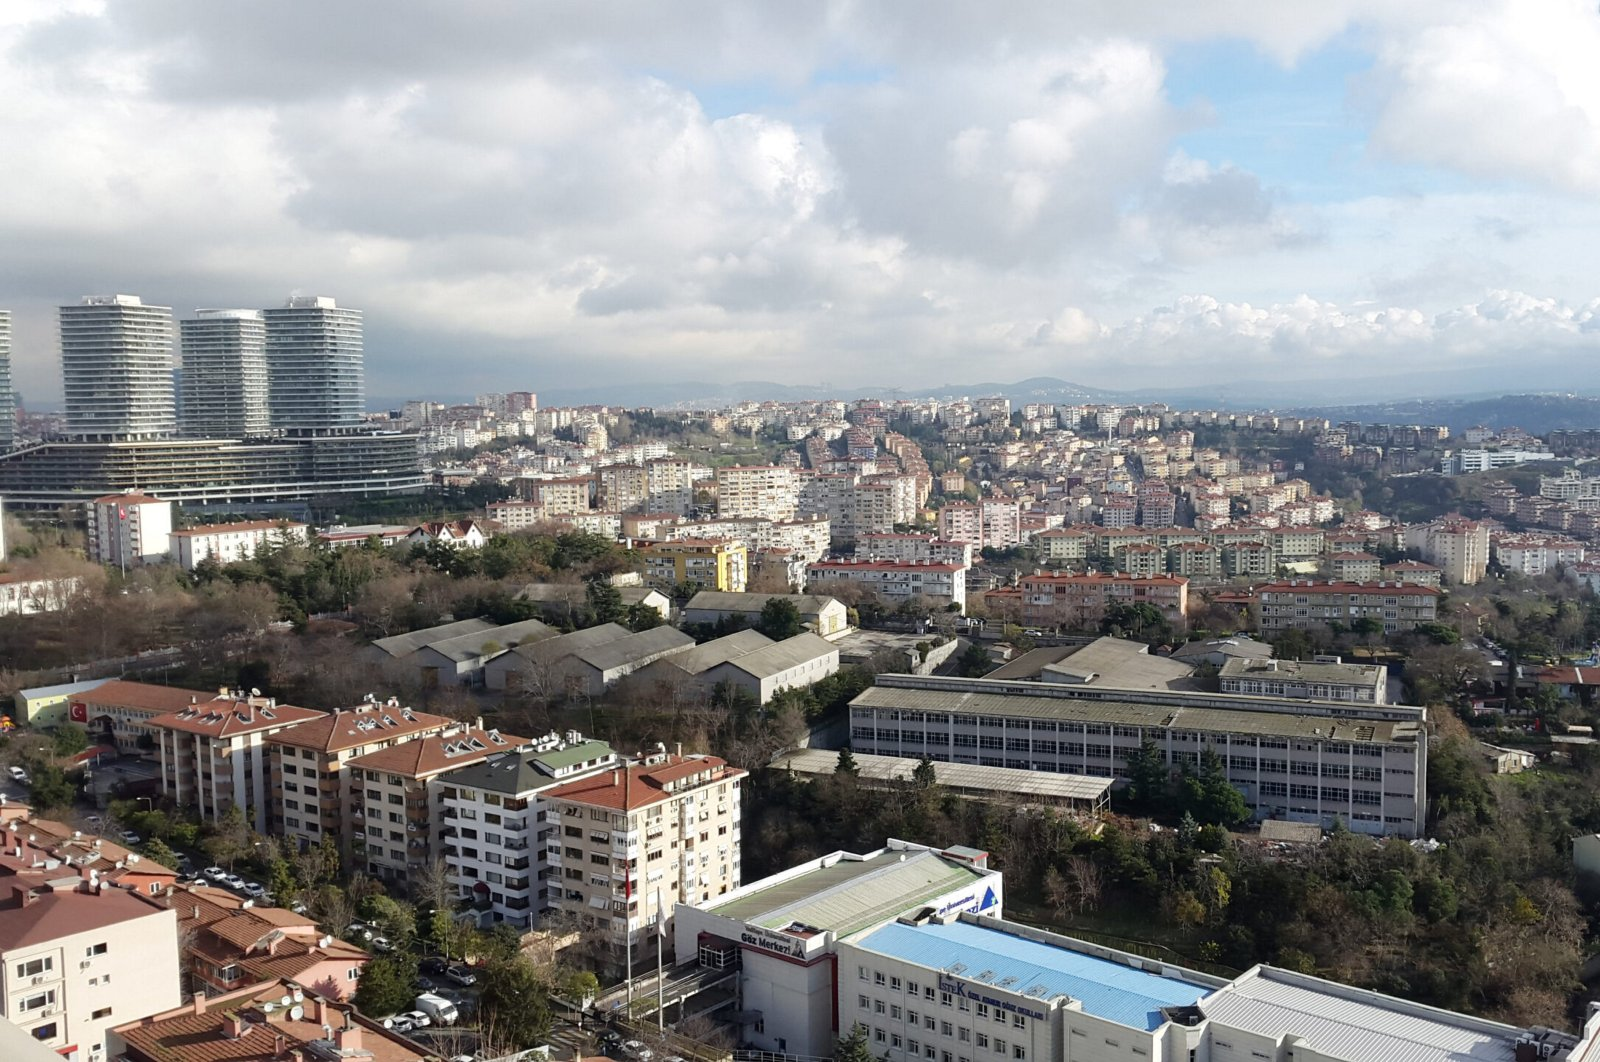 An aerial view of residential and commercial buildings in Istanbul's Beşiktaş district, Turkey. (Sabah Photo)